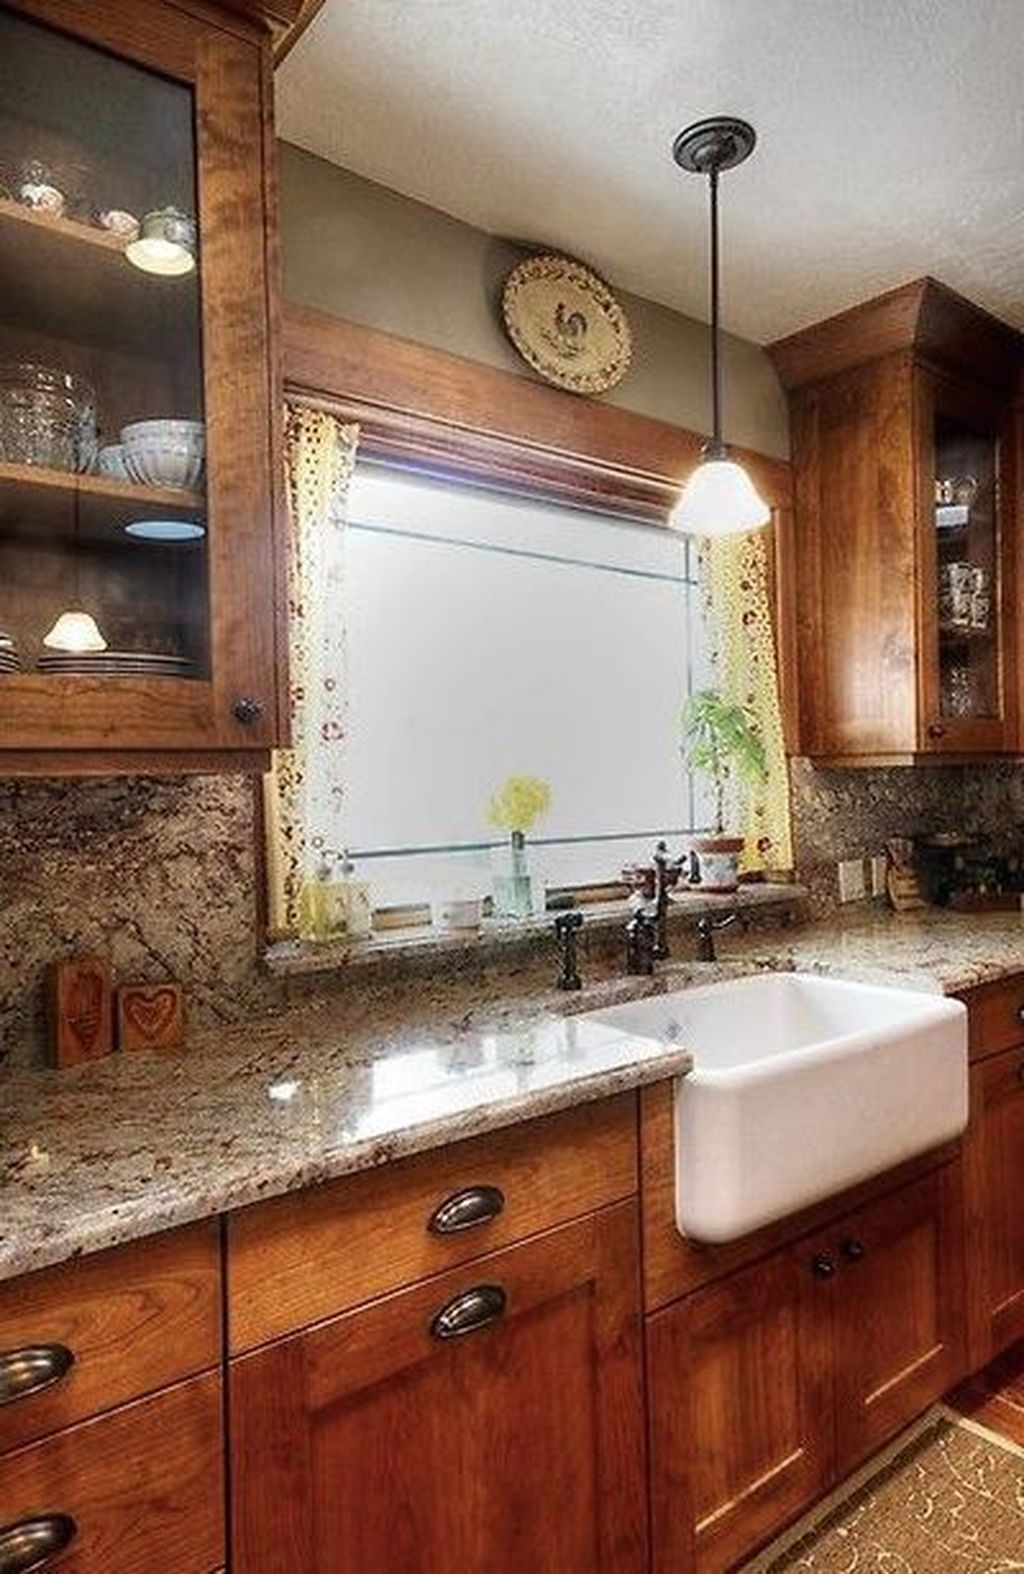 Modern Farmhouse Kitchen Cabinet Makeover Design Ideas20